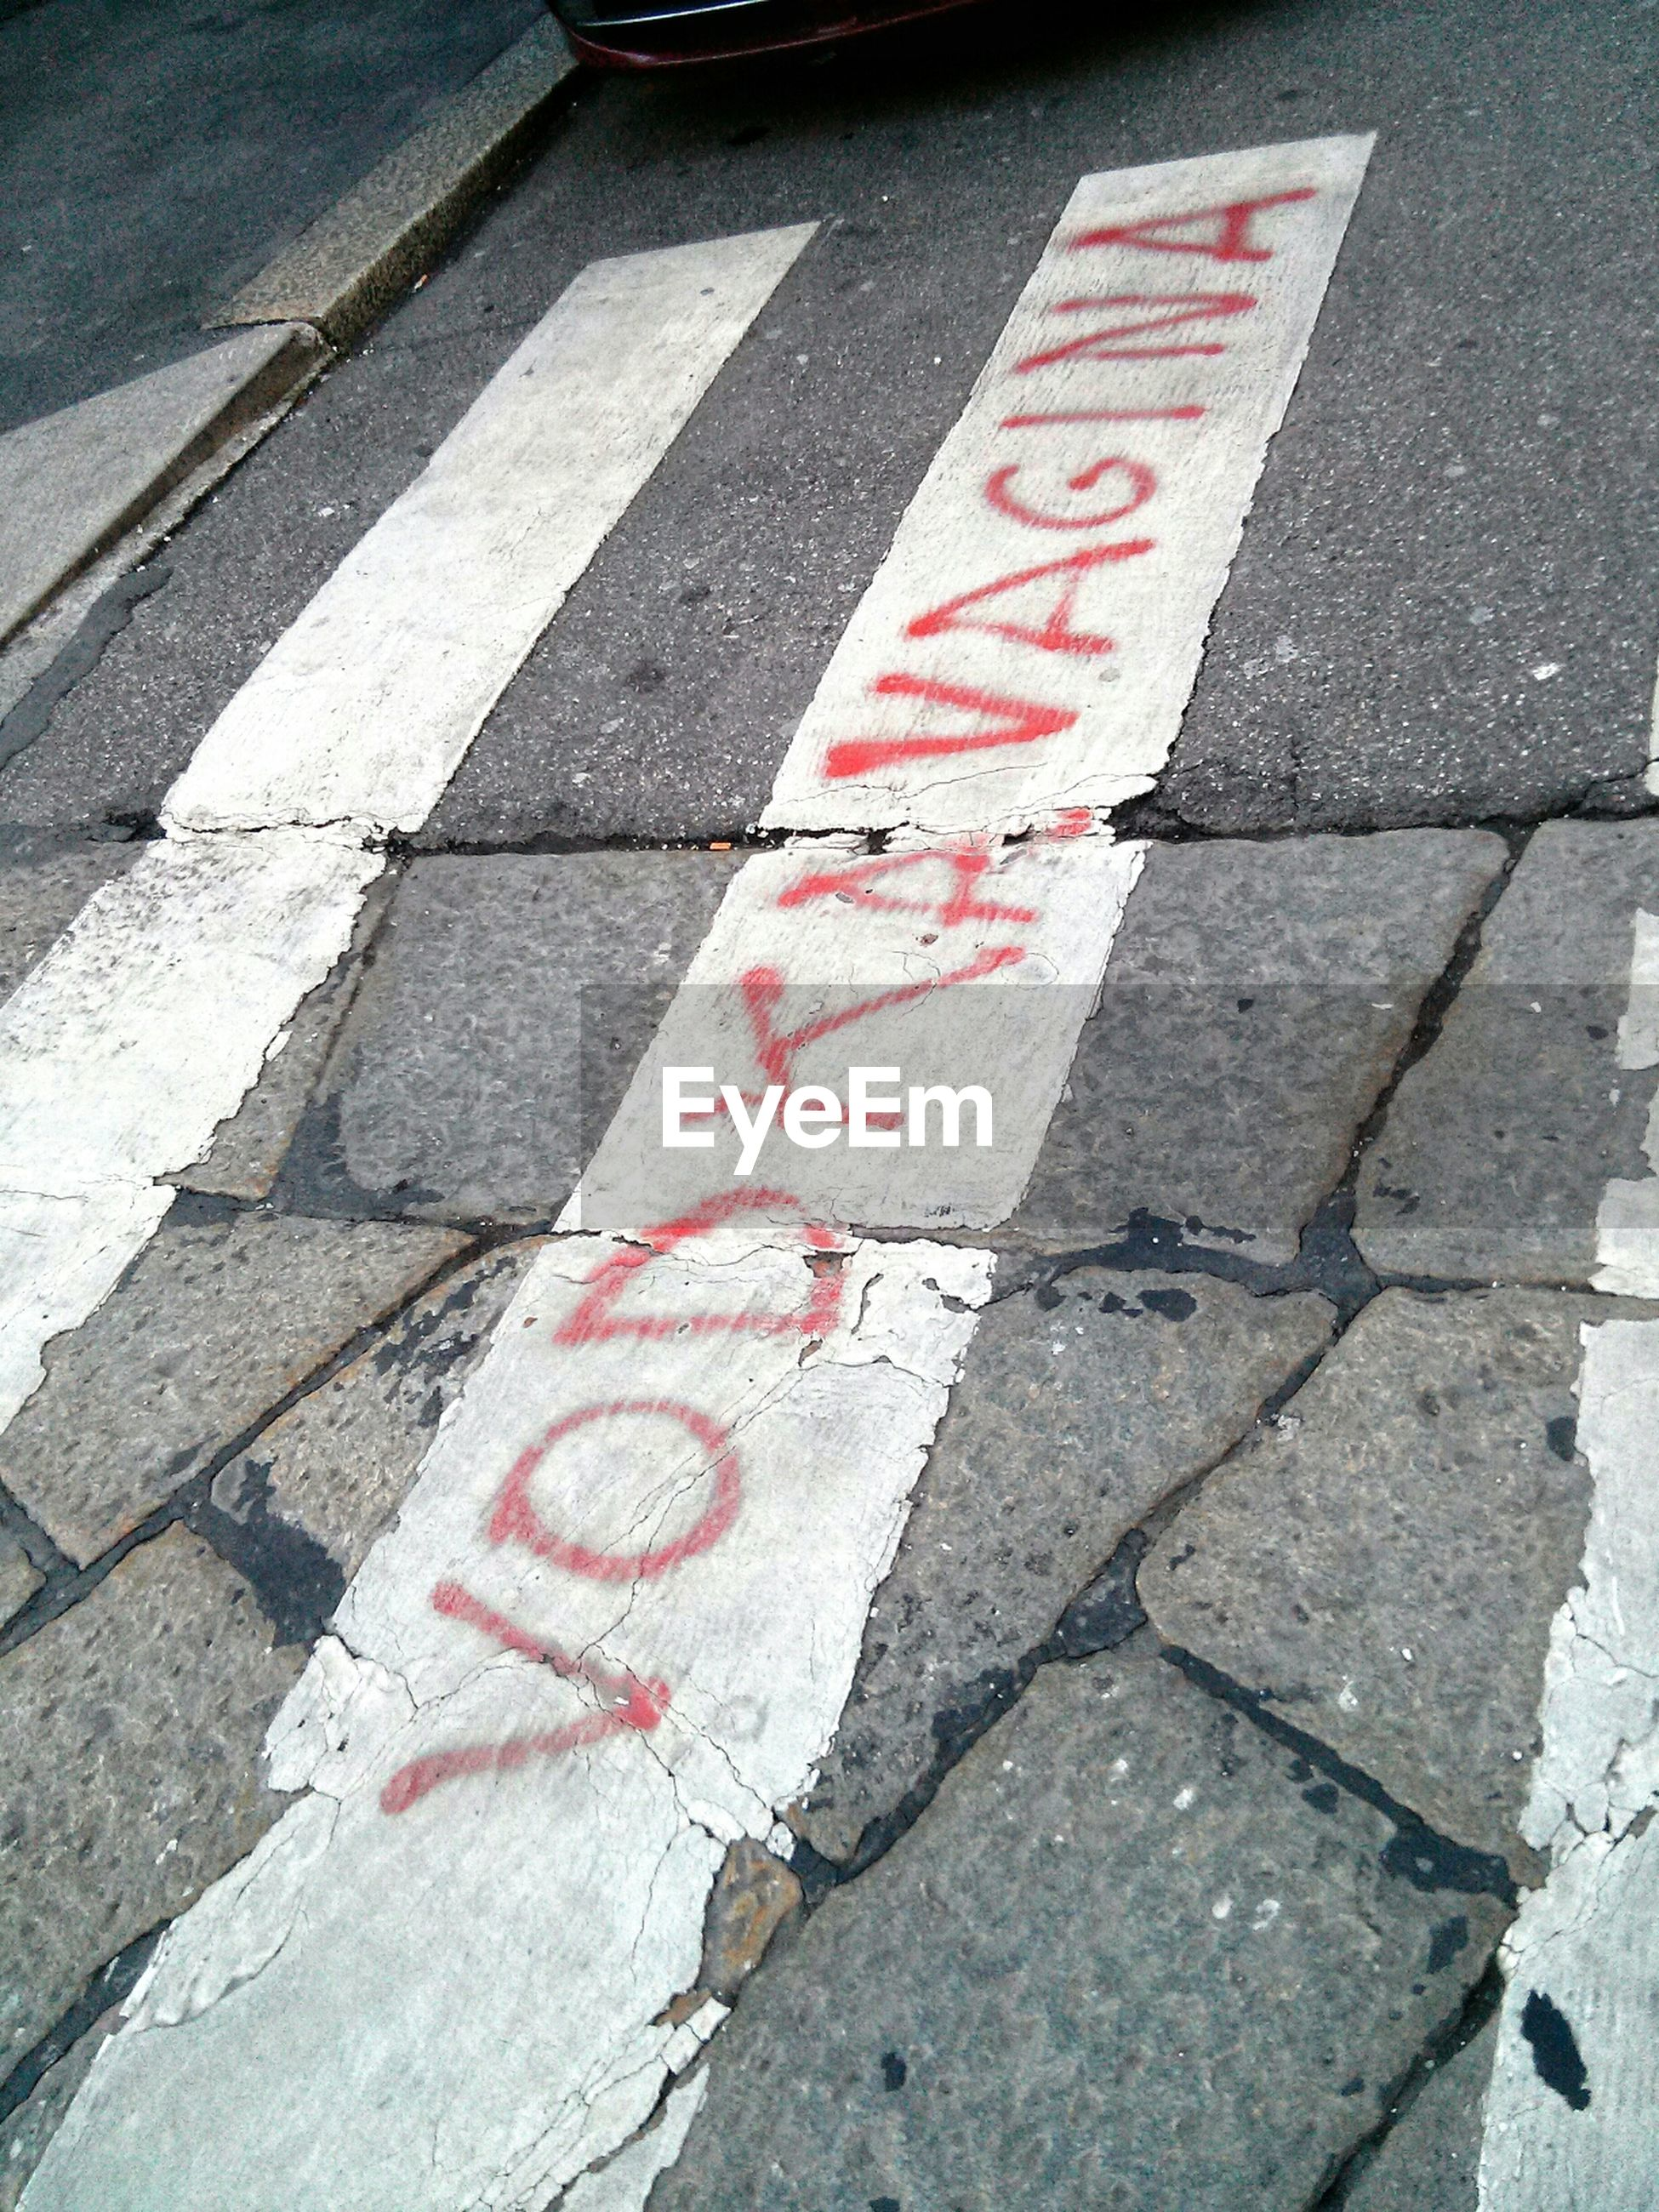 road marking, street, guidance, high angle view, asphalt, road, red, transportation, communication, road sign, text, direction, directional sign, arrow symbol, sign, western script, zebra crossing, sidewalk, day, outdoors